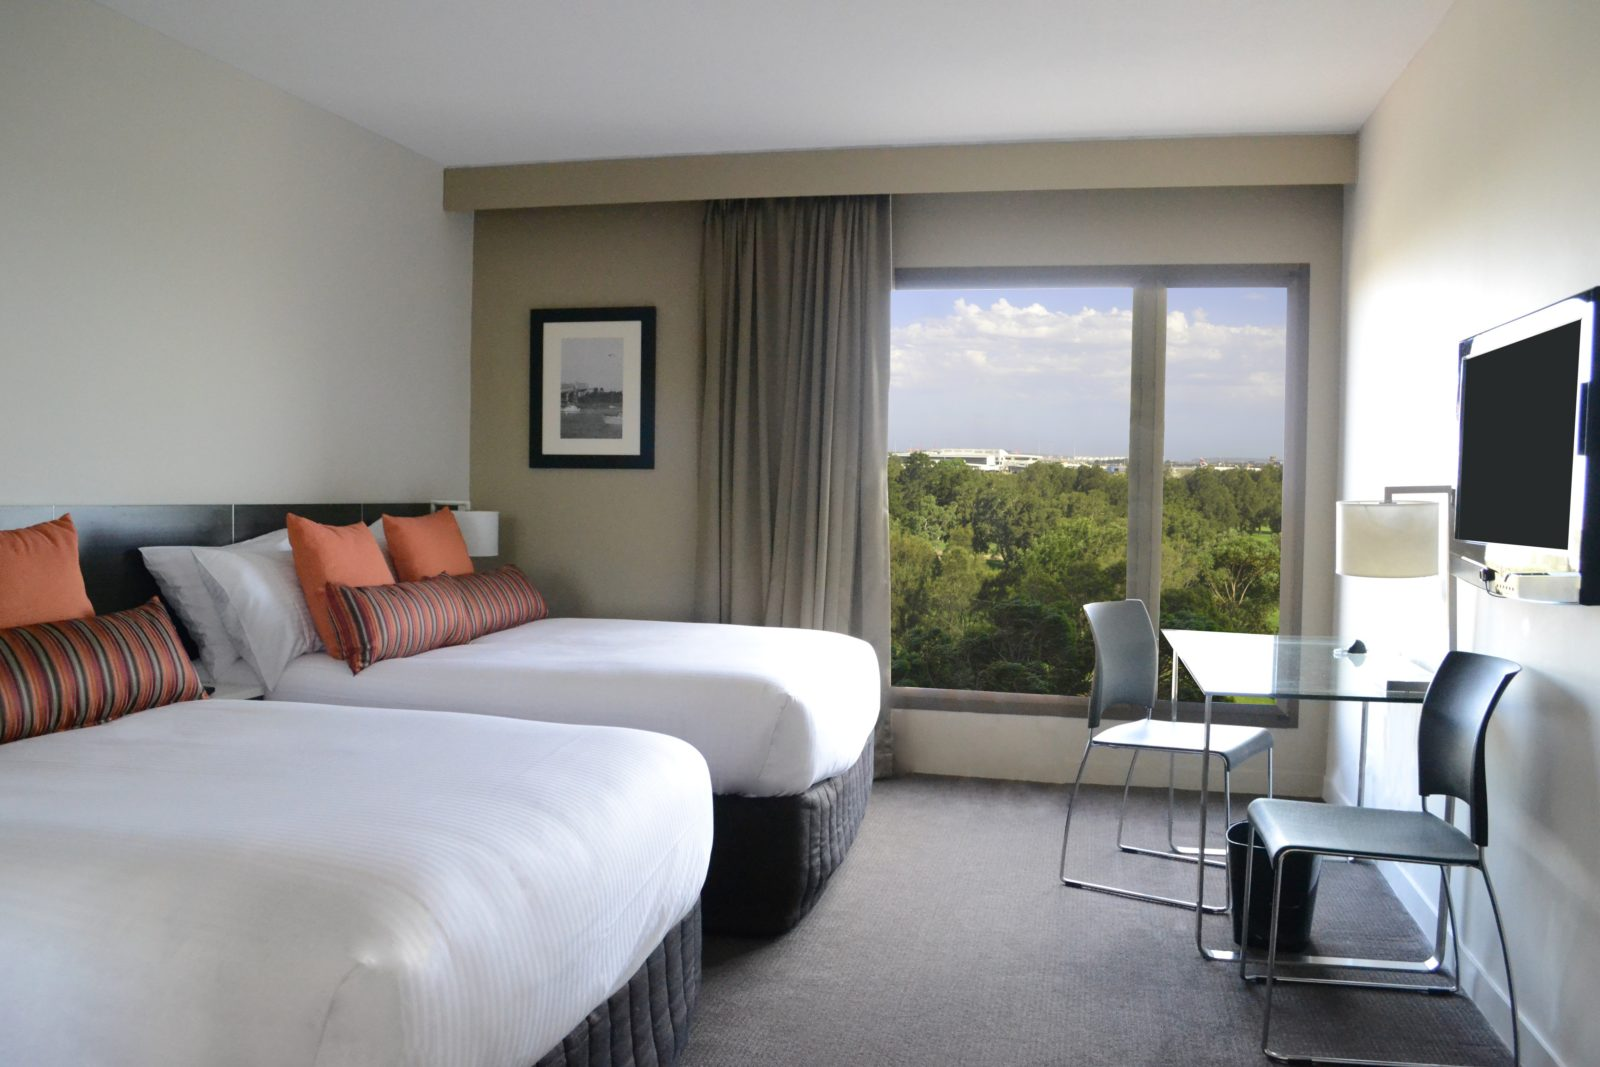 Rooms at Mercure Sydney International Airport